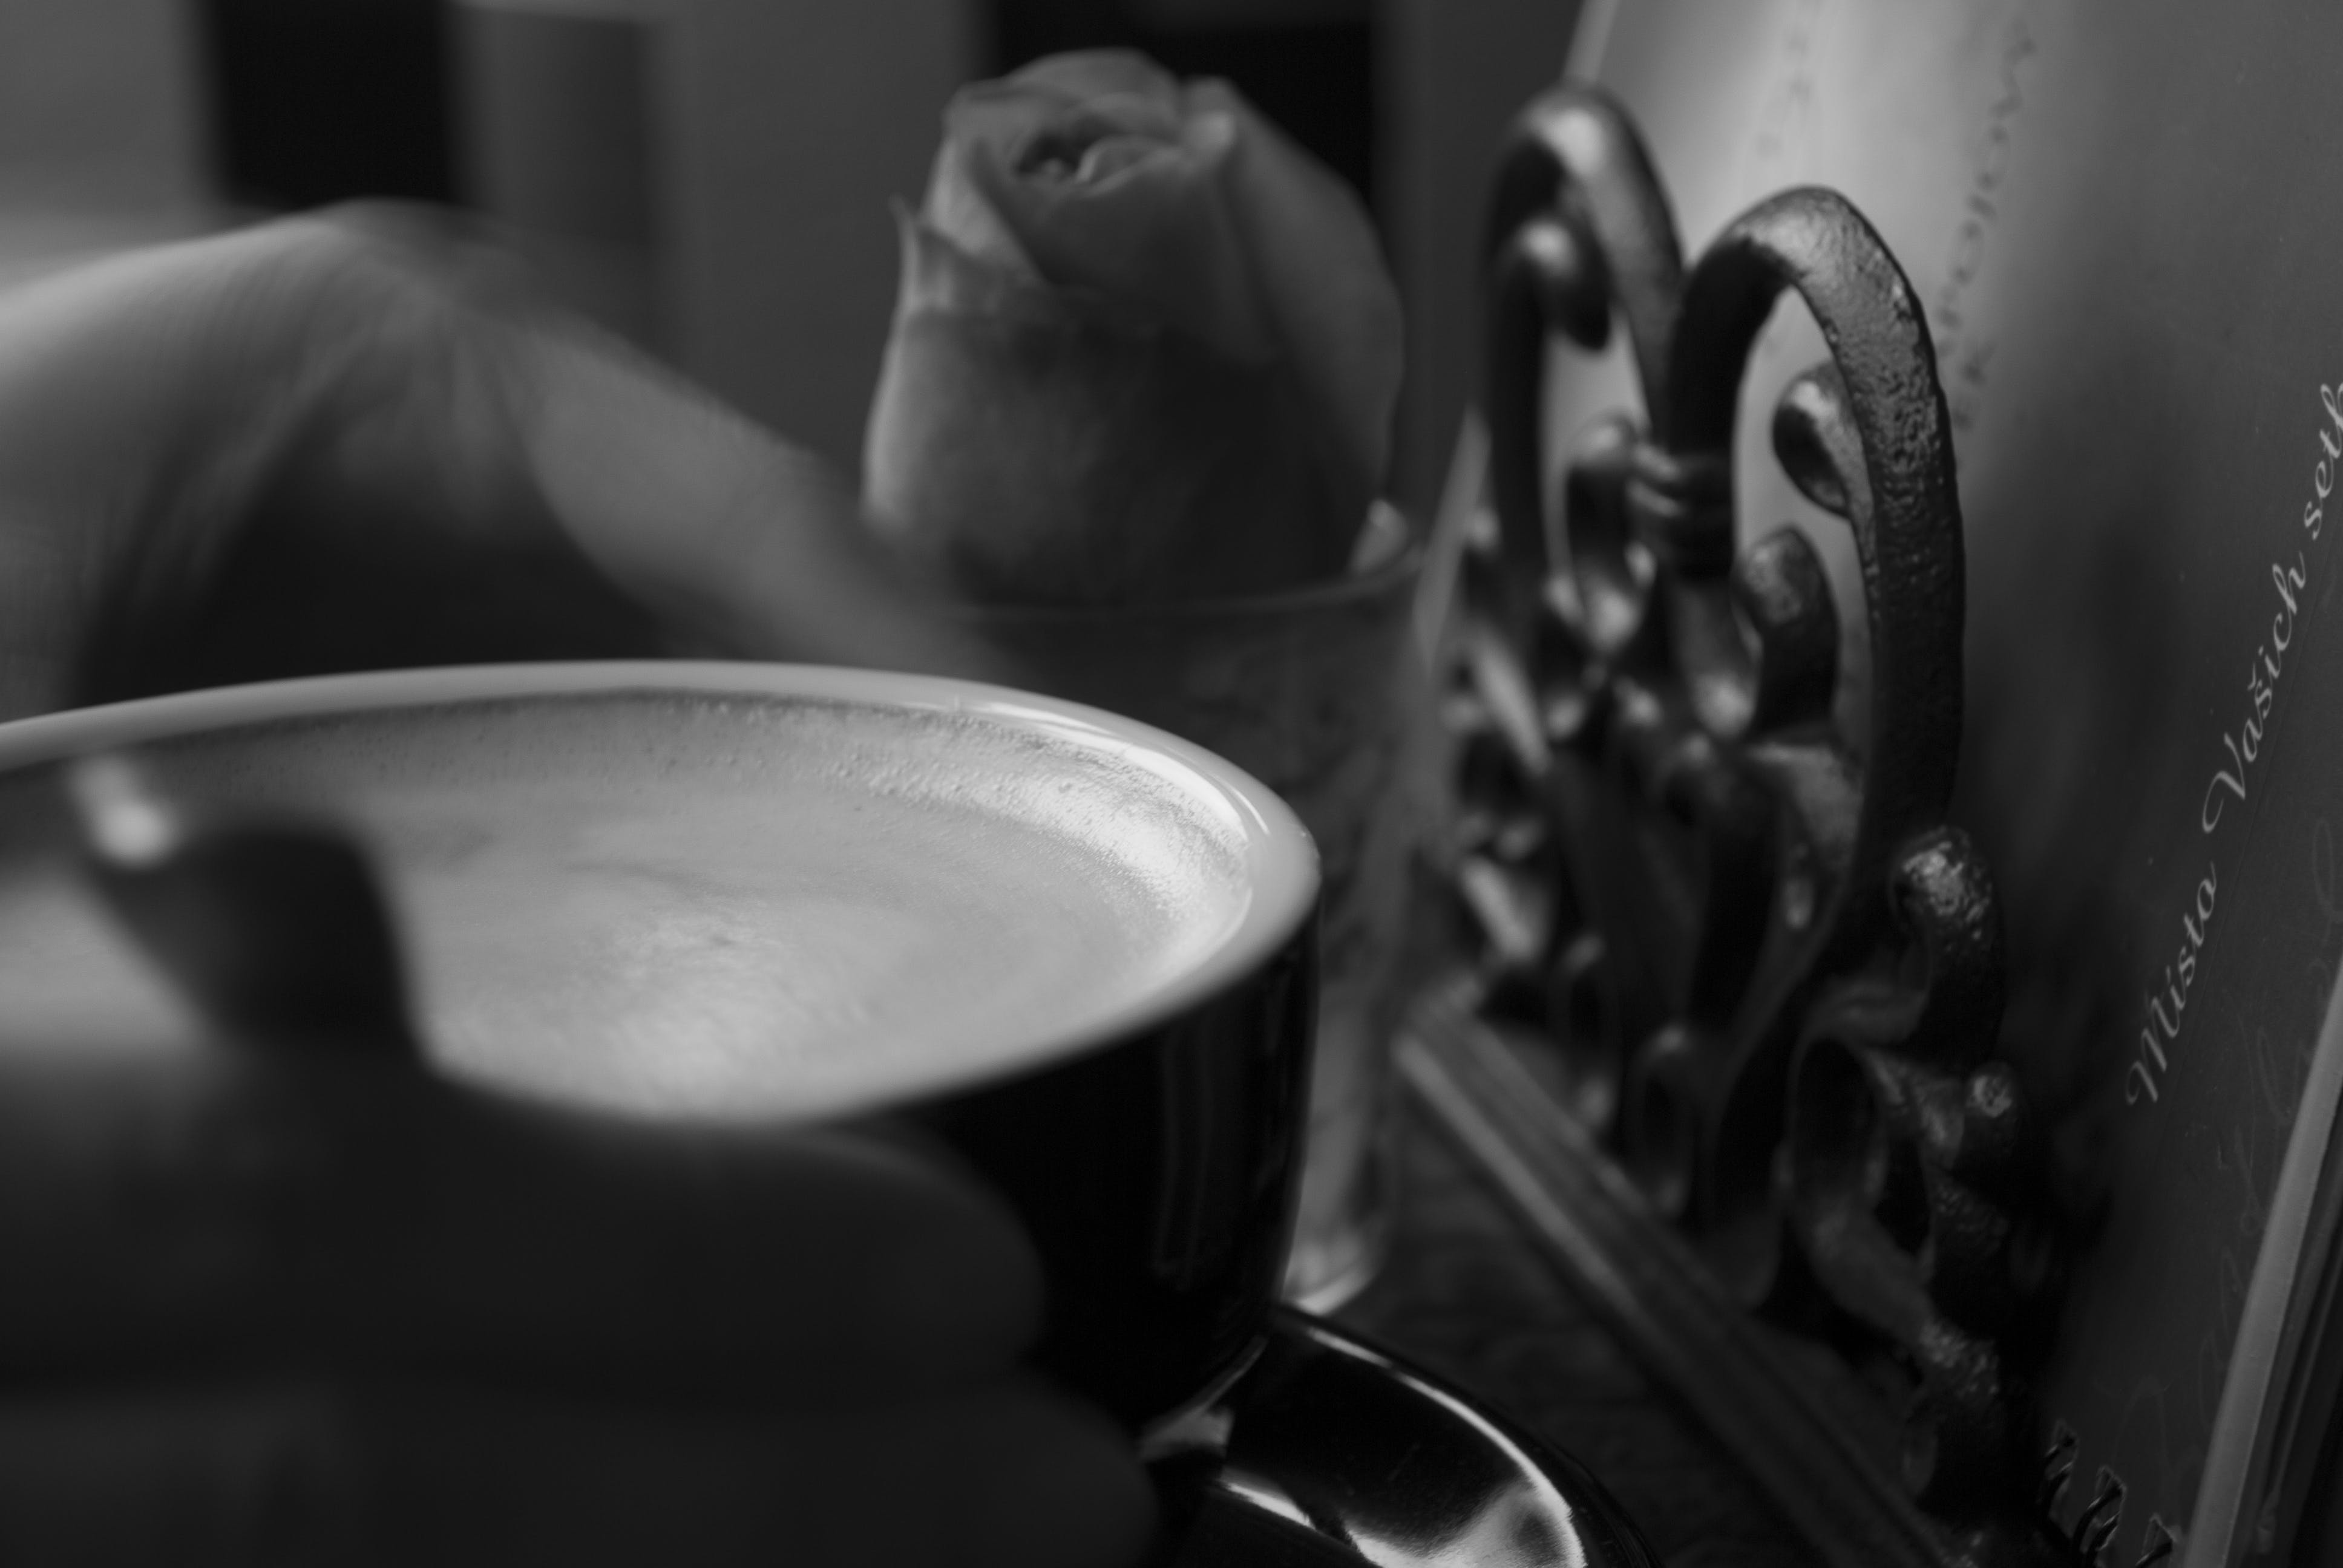 Free stock photo of restaurant, coffee, hand, table